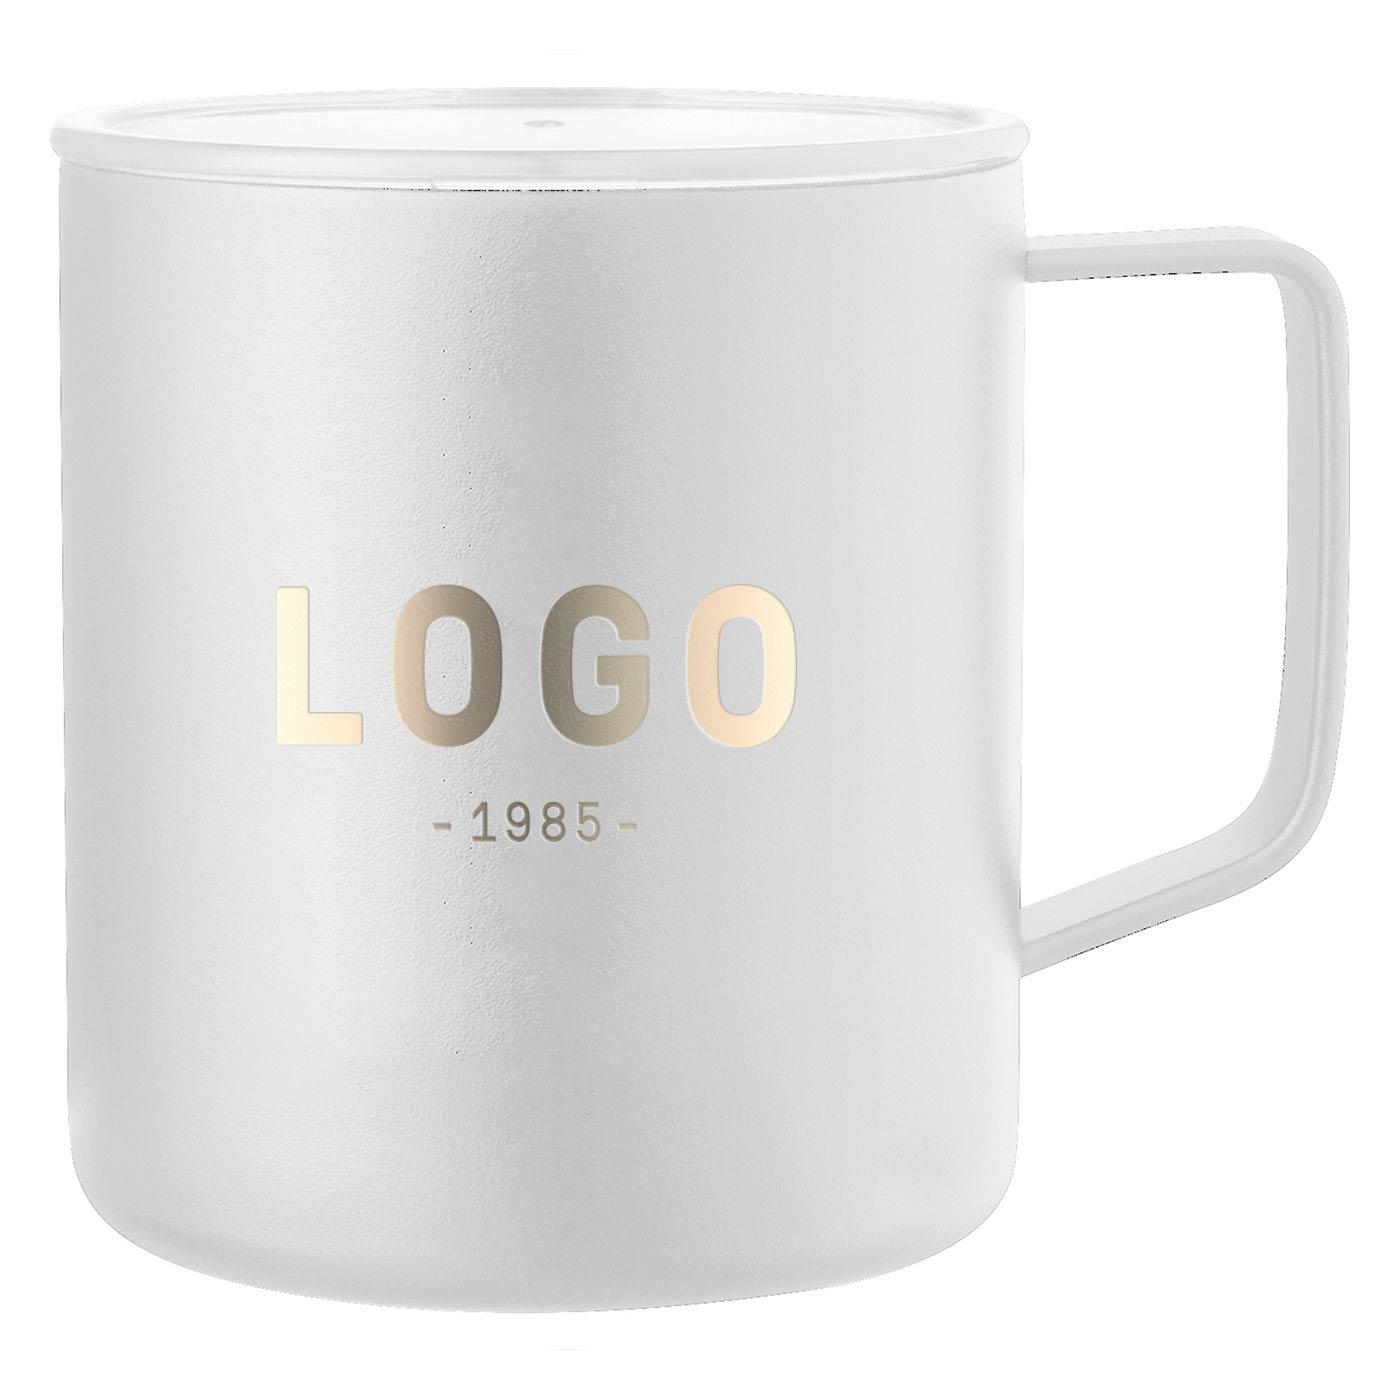 122700 vail insulated camp mug one location laser engraved